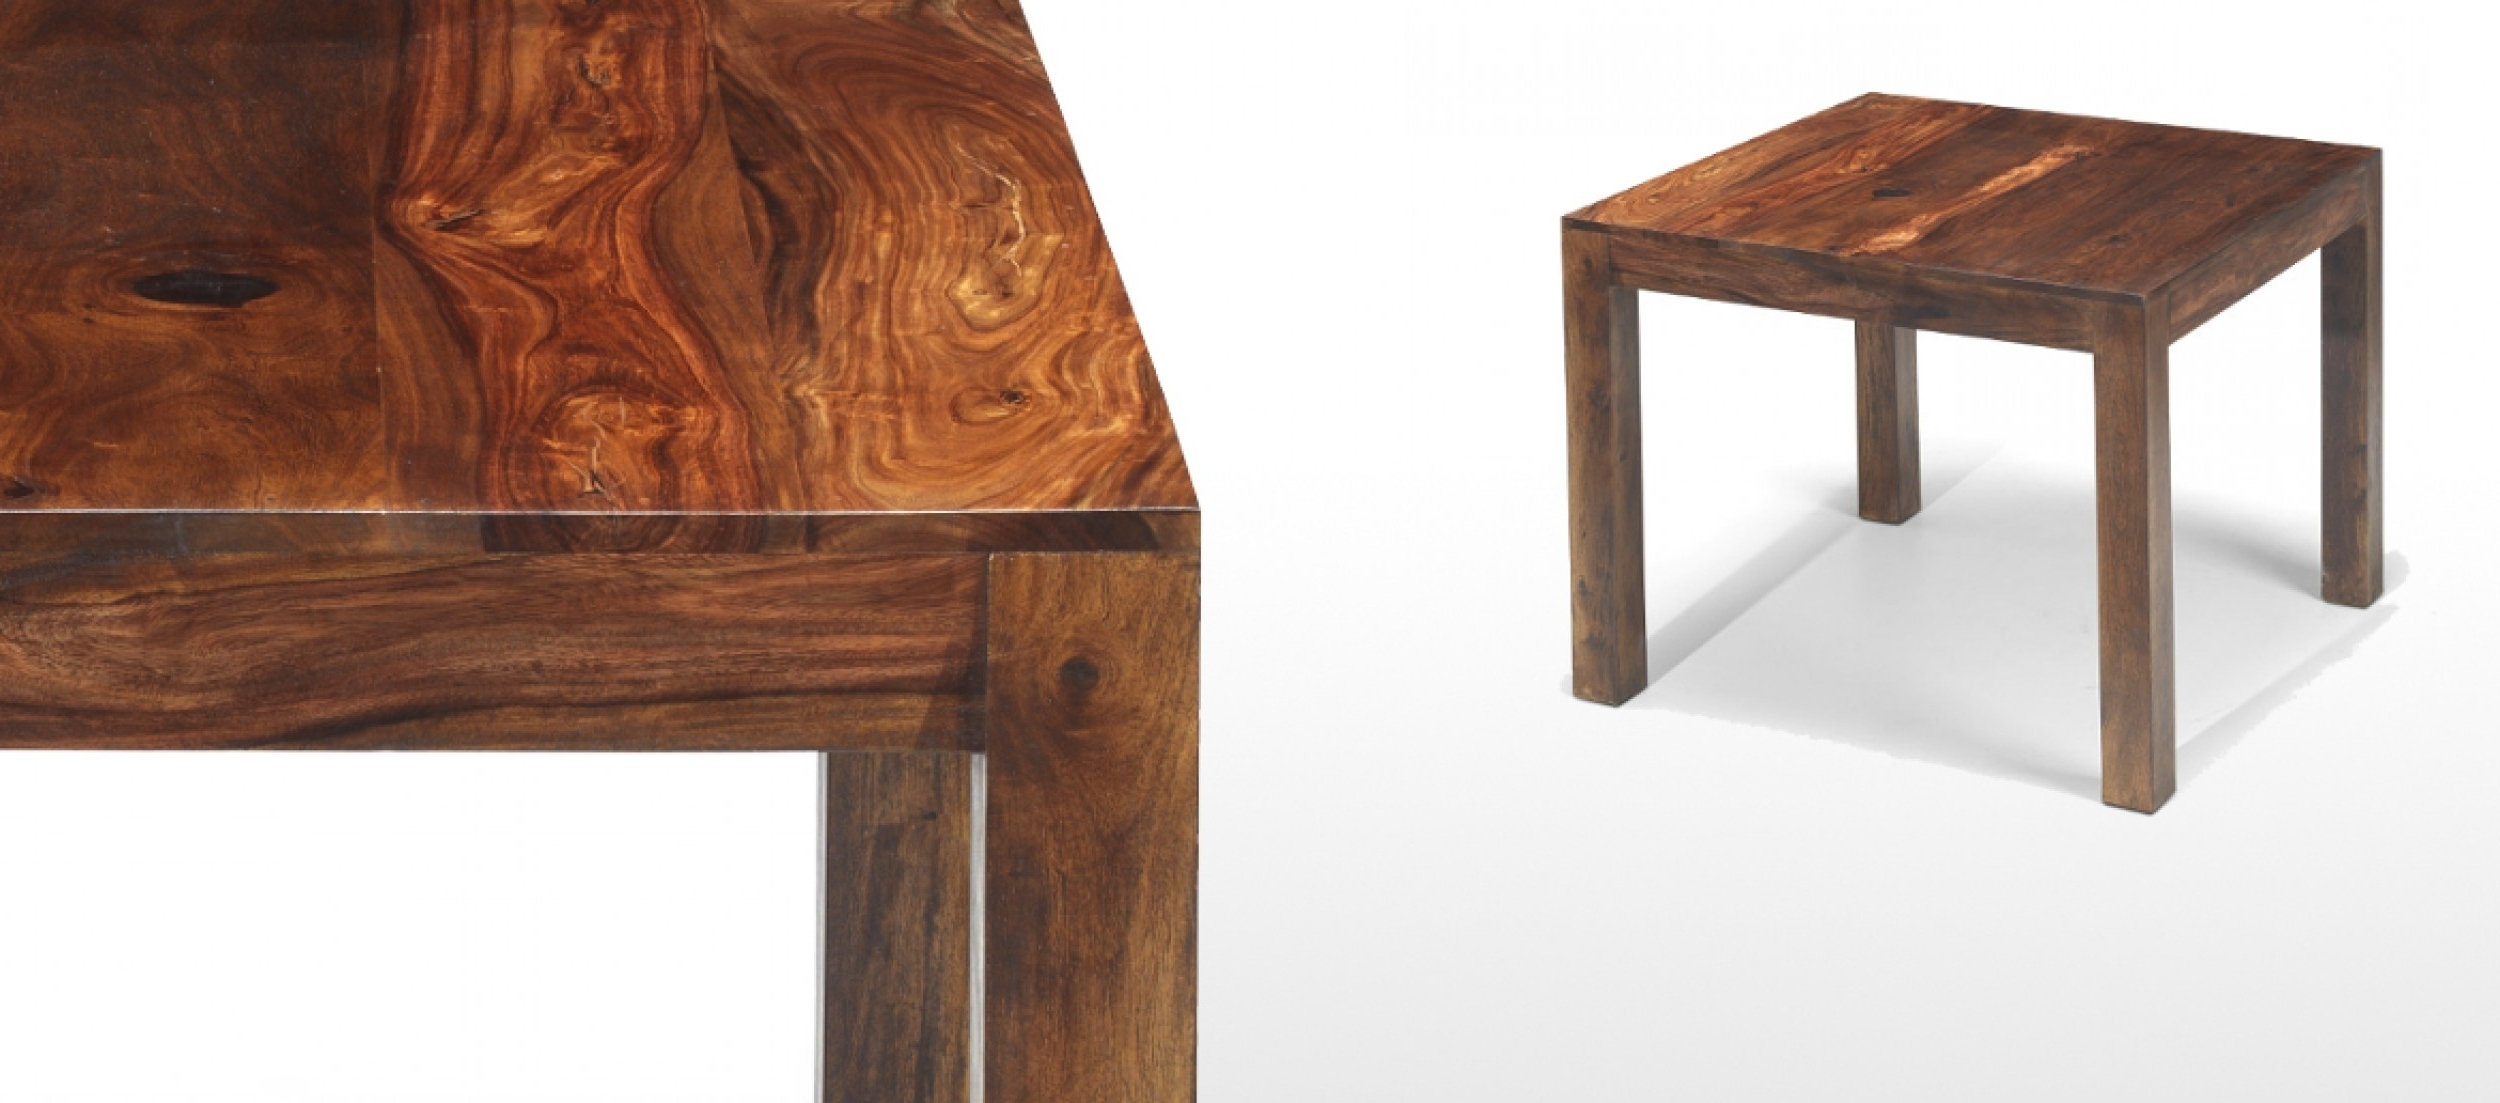 Quercus Living Intended For Well Known Sheesham Wood Dining Tables (View 11 of 25)